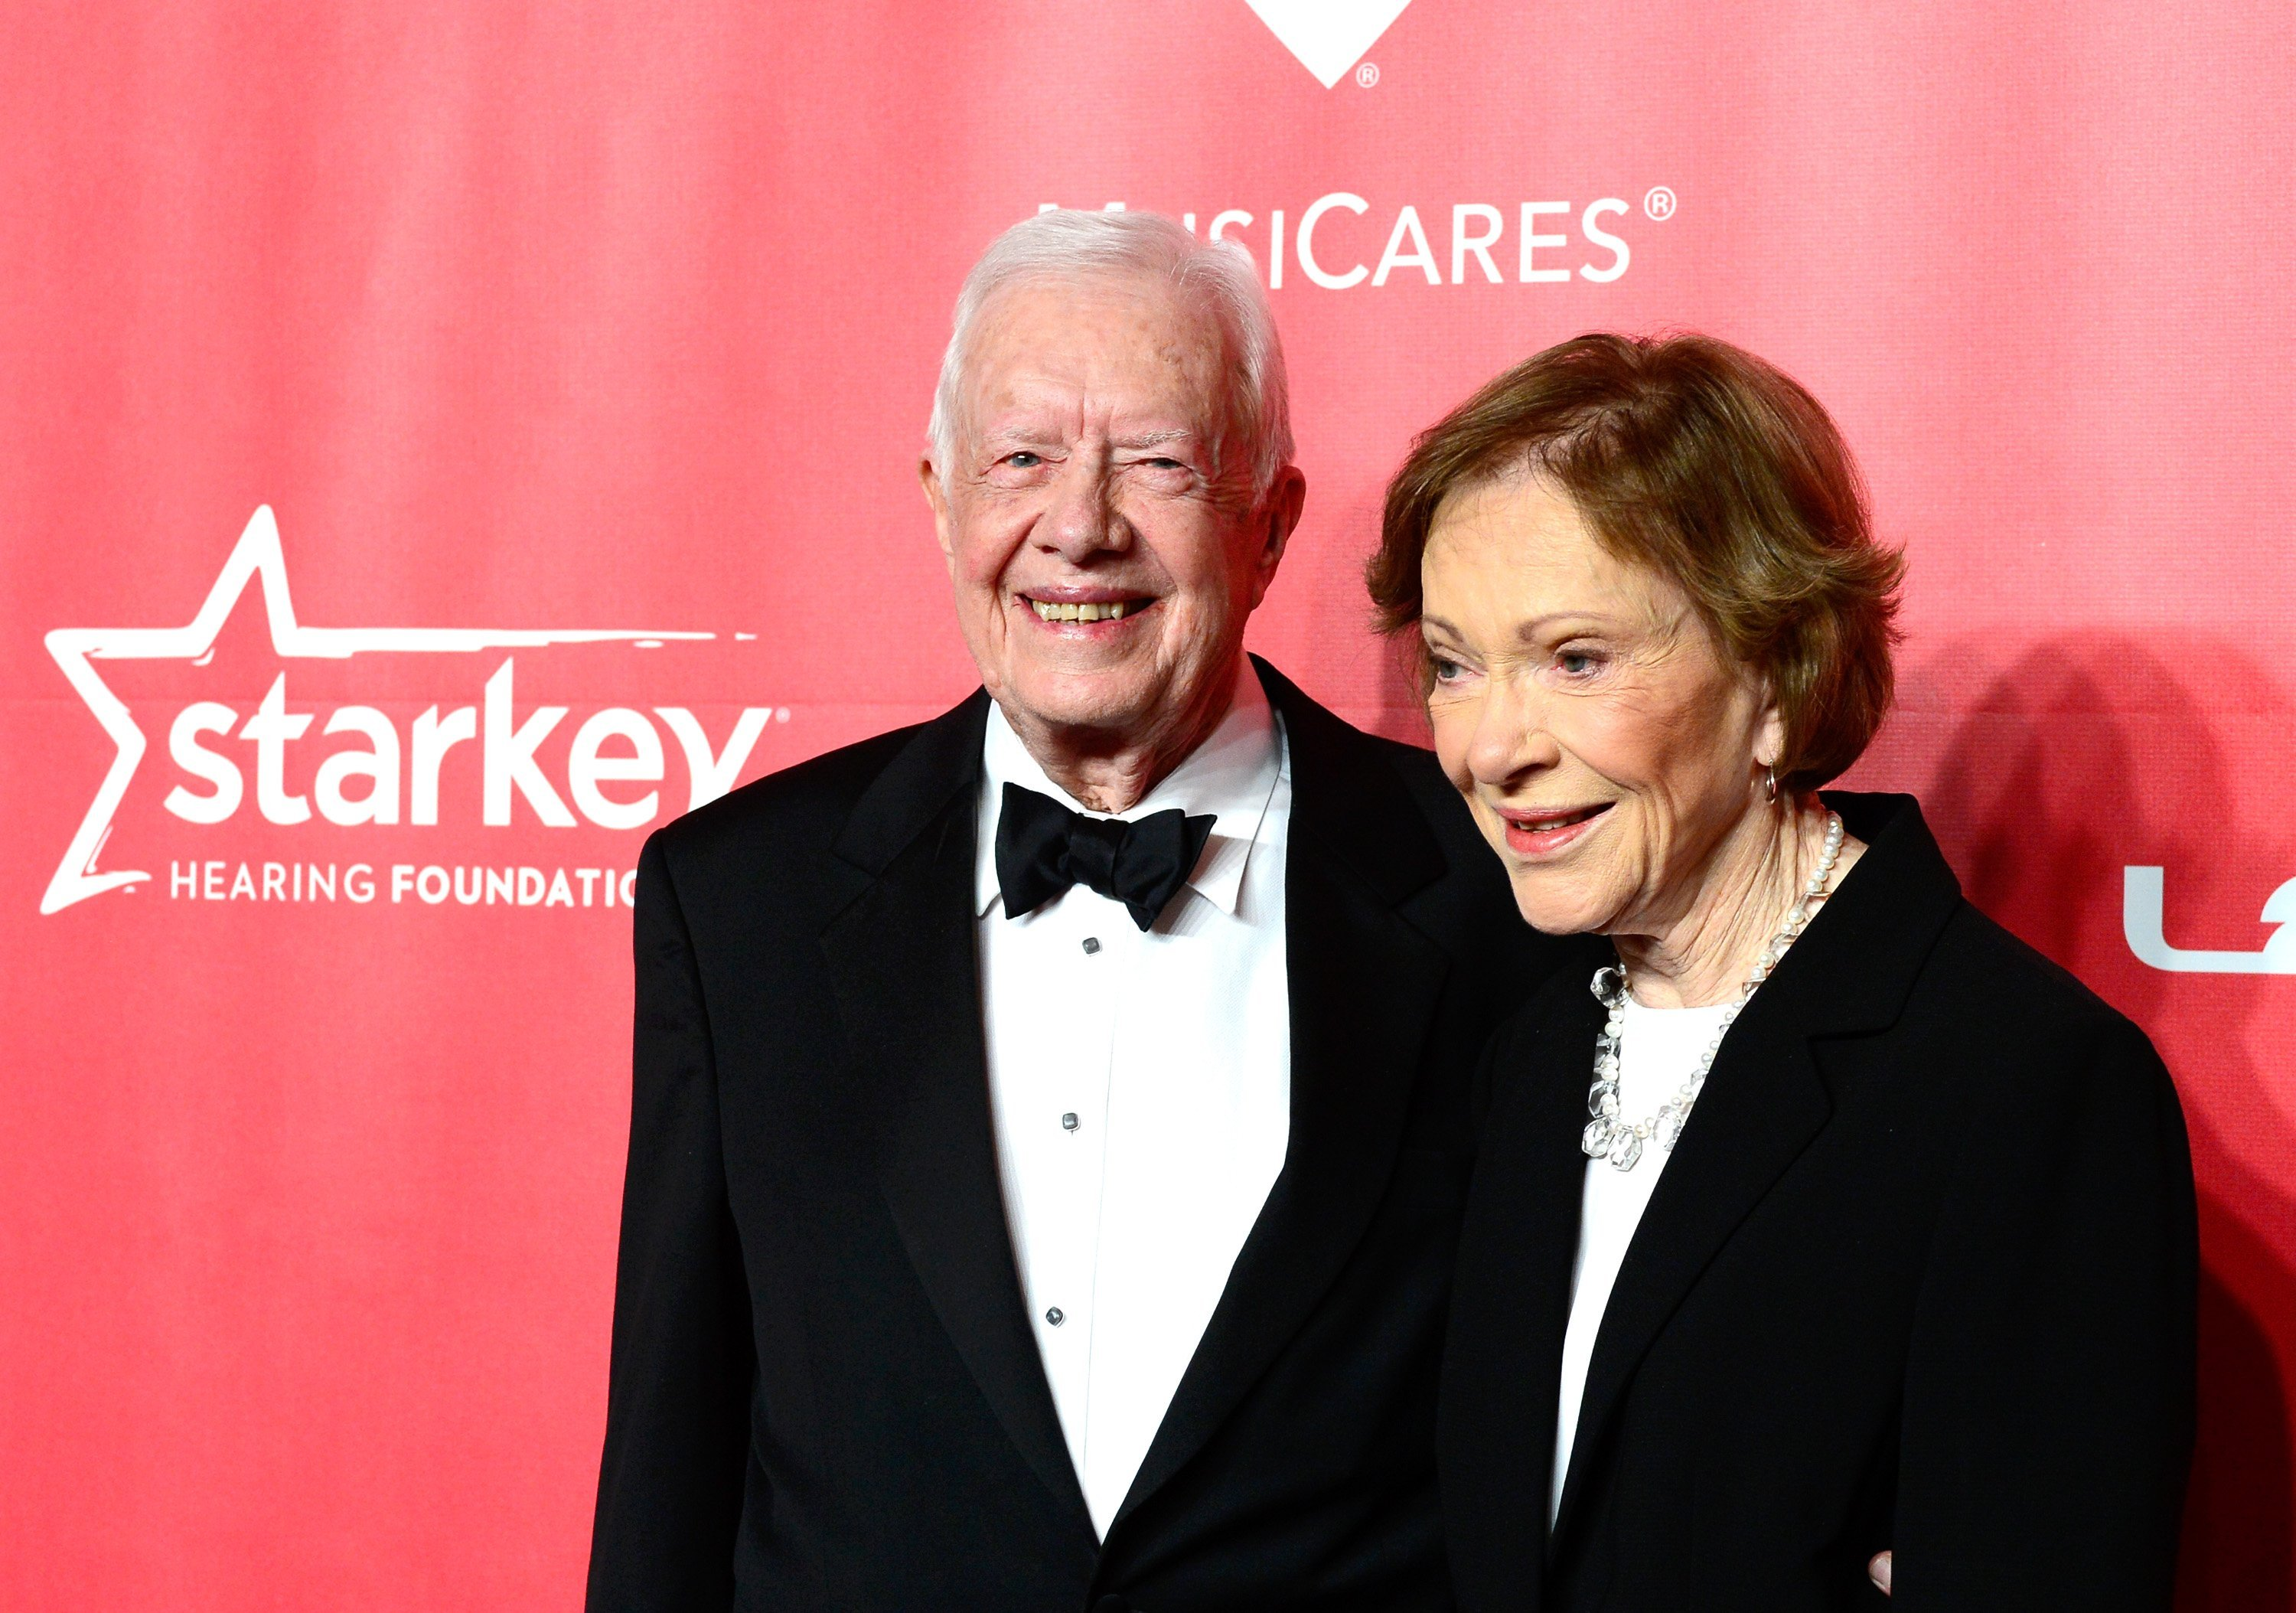 Jimmy Carter  Rosalynn Carter attend the 25th anniversary MusiCares 2015 Person Of The Year Gala at the Los Angeles Convention Center on February 6, 2015, in Los Angeles, California. | Source: Getty Images.